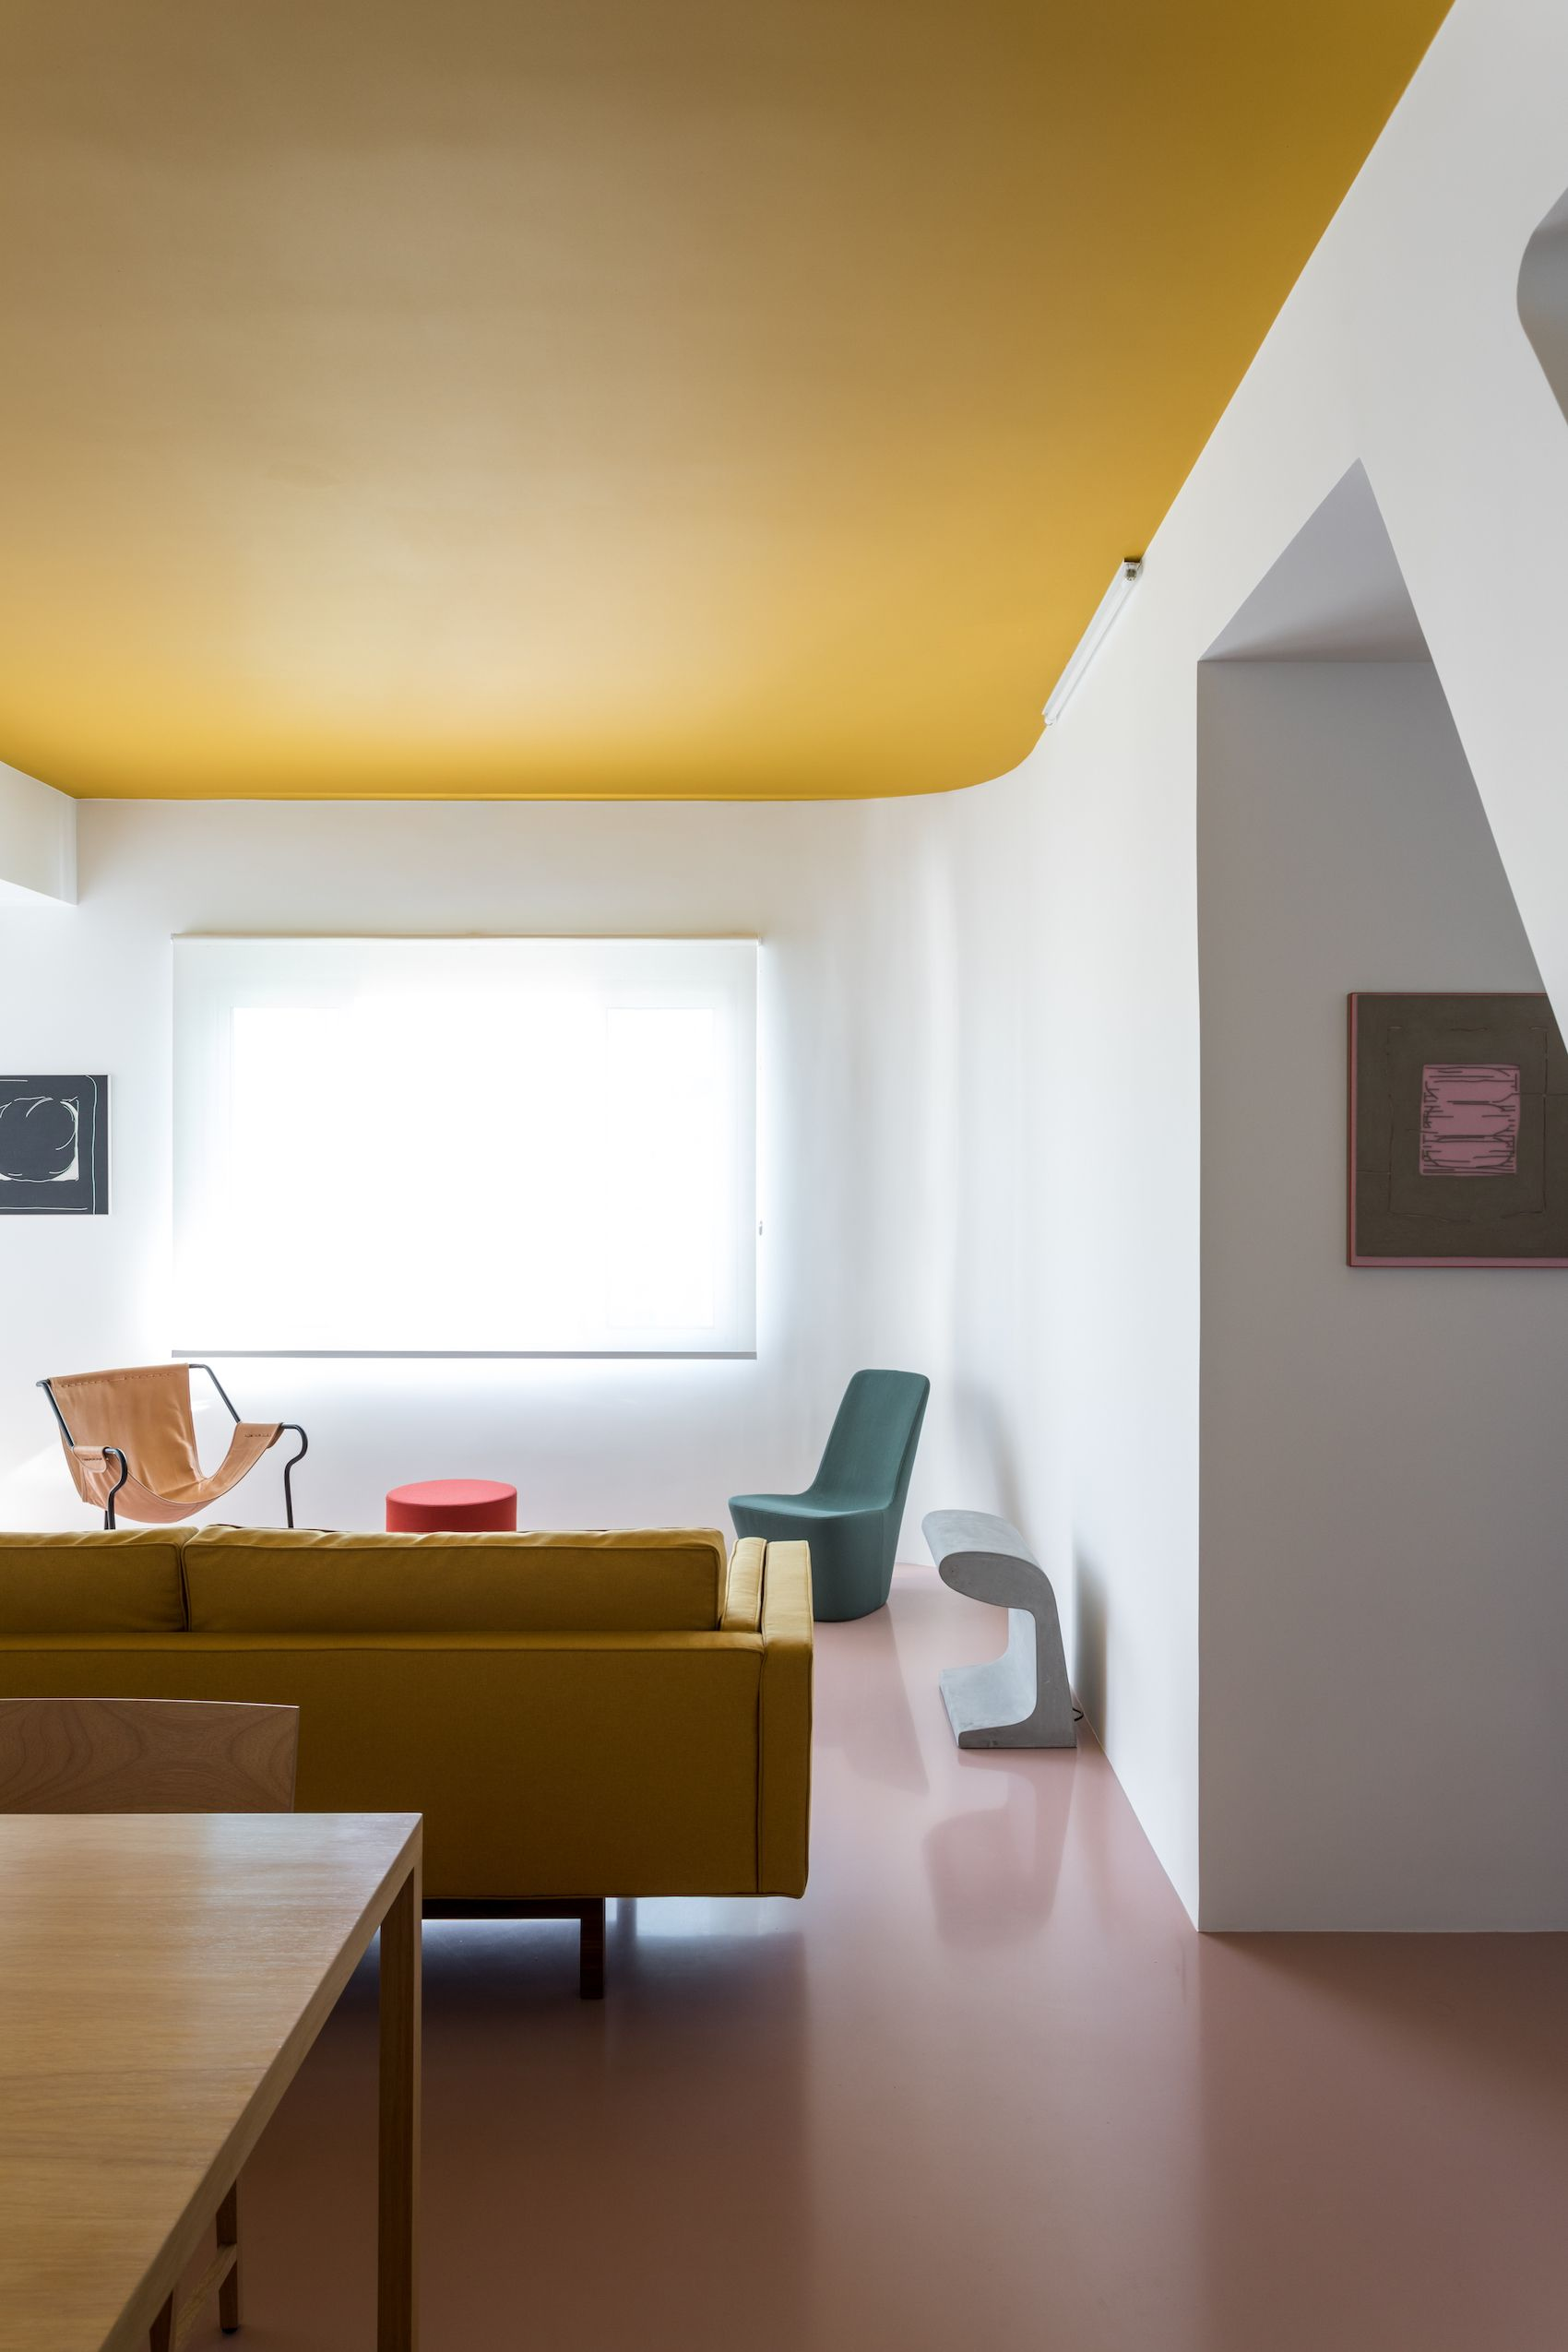 Apartmento cass is a minimalist apartment located in são paulo brazil designed by felipe hess in collaboration with patricia sturm